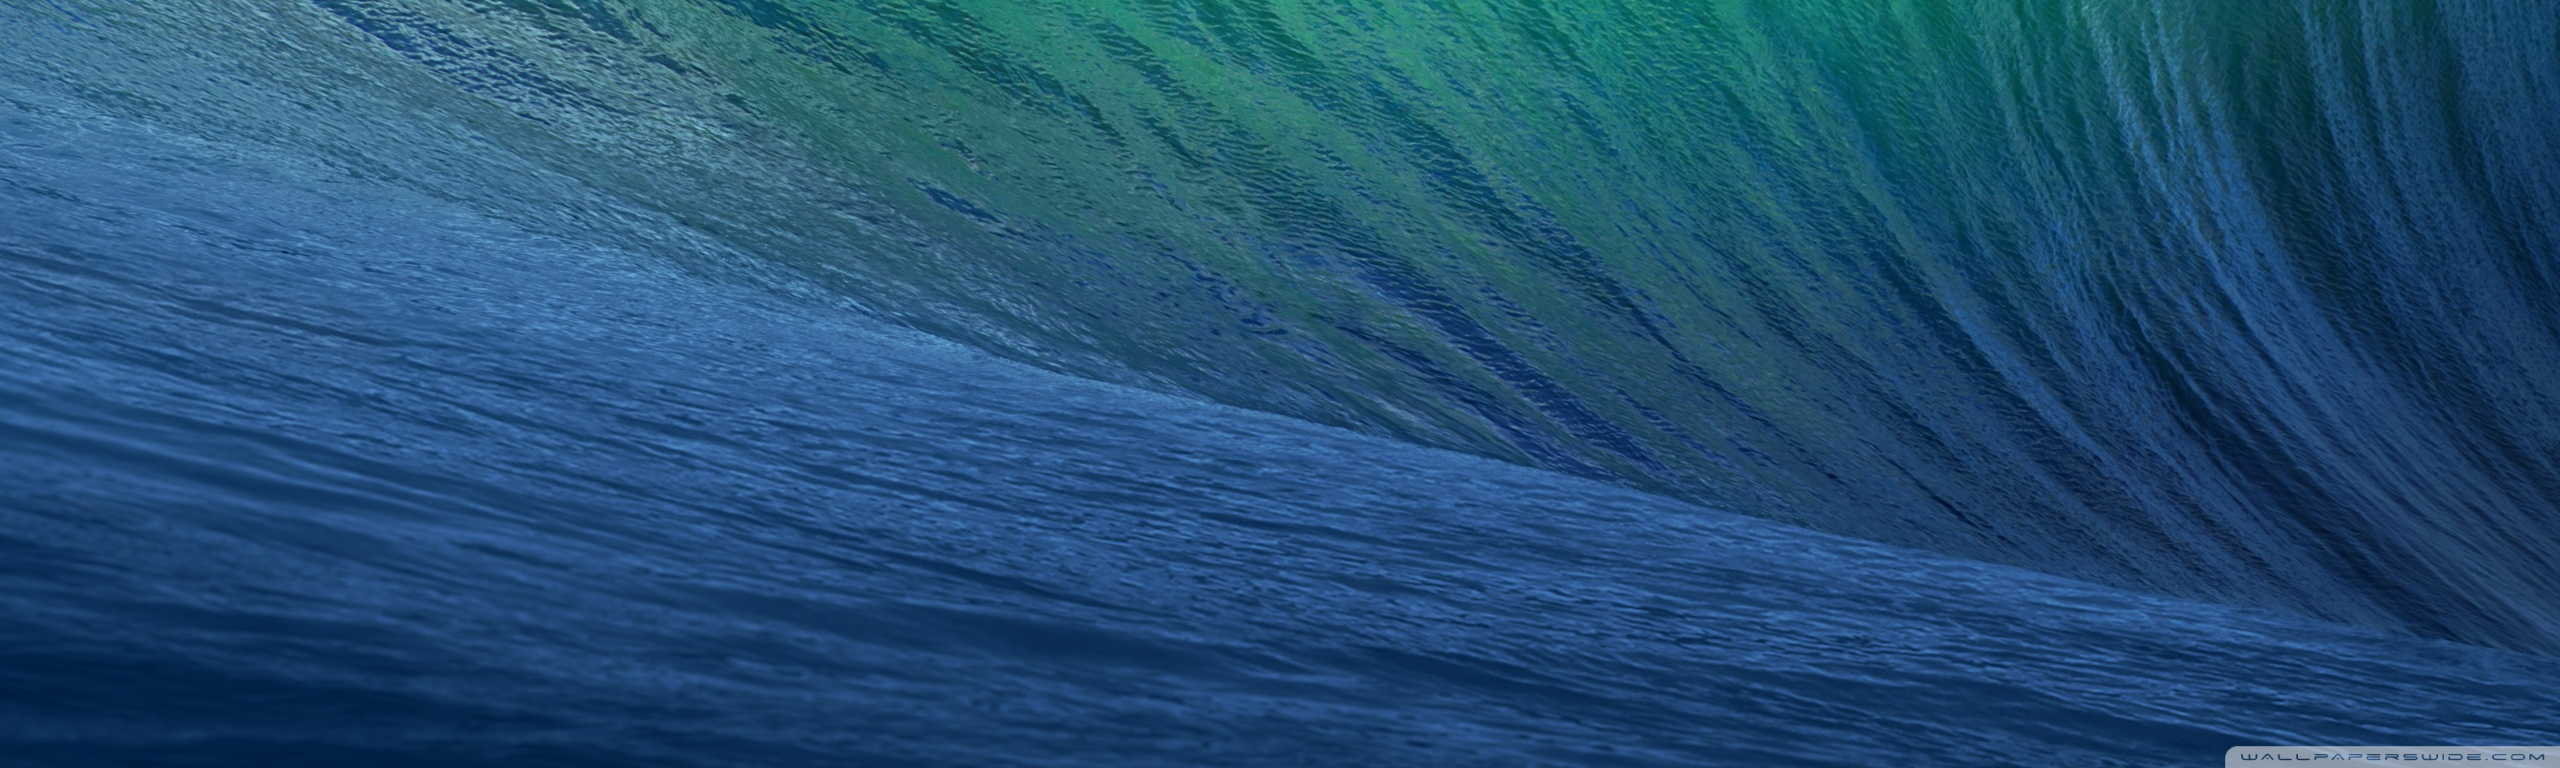 mac os mavericks wallpapers 25 wallpapers